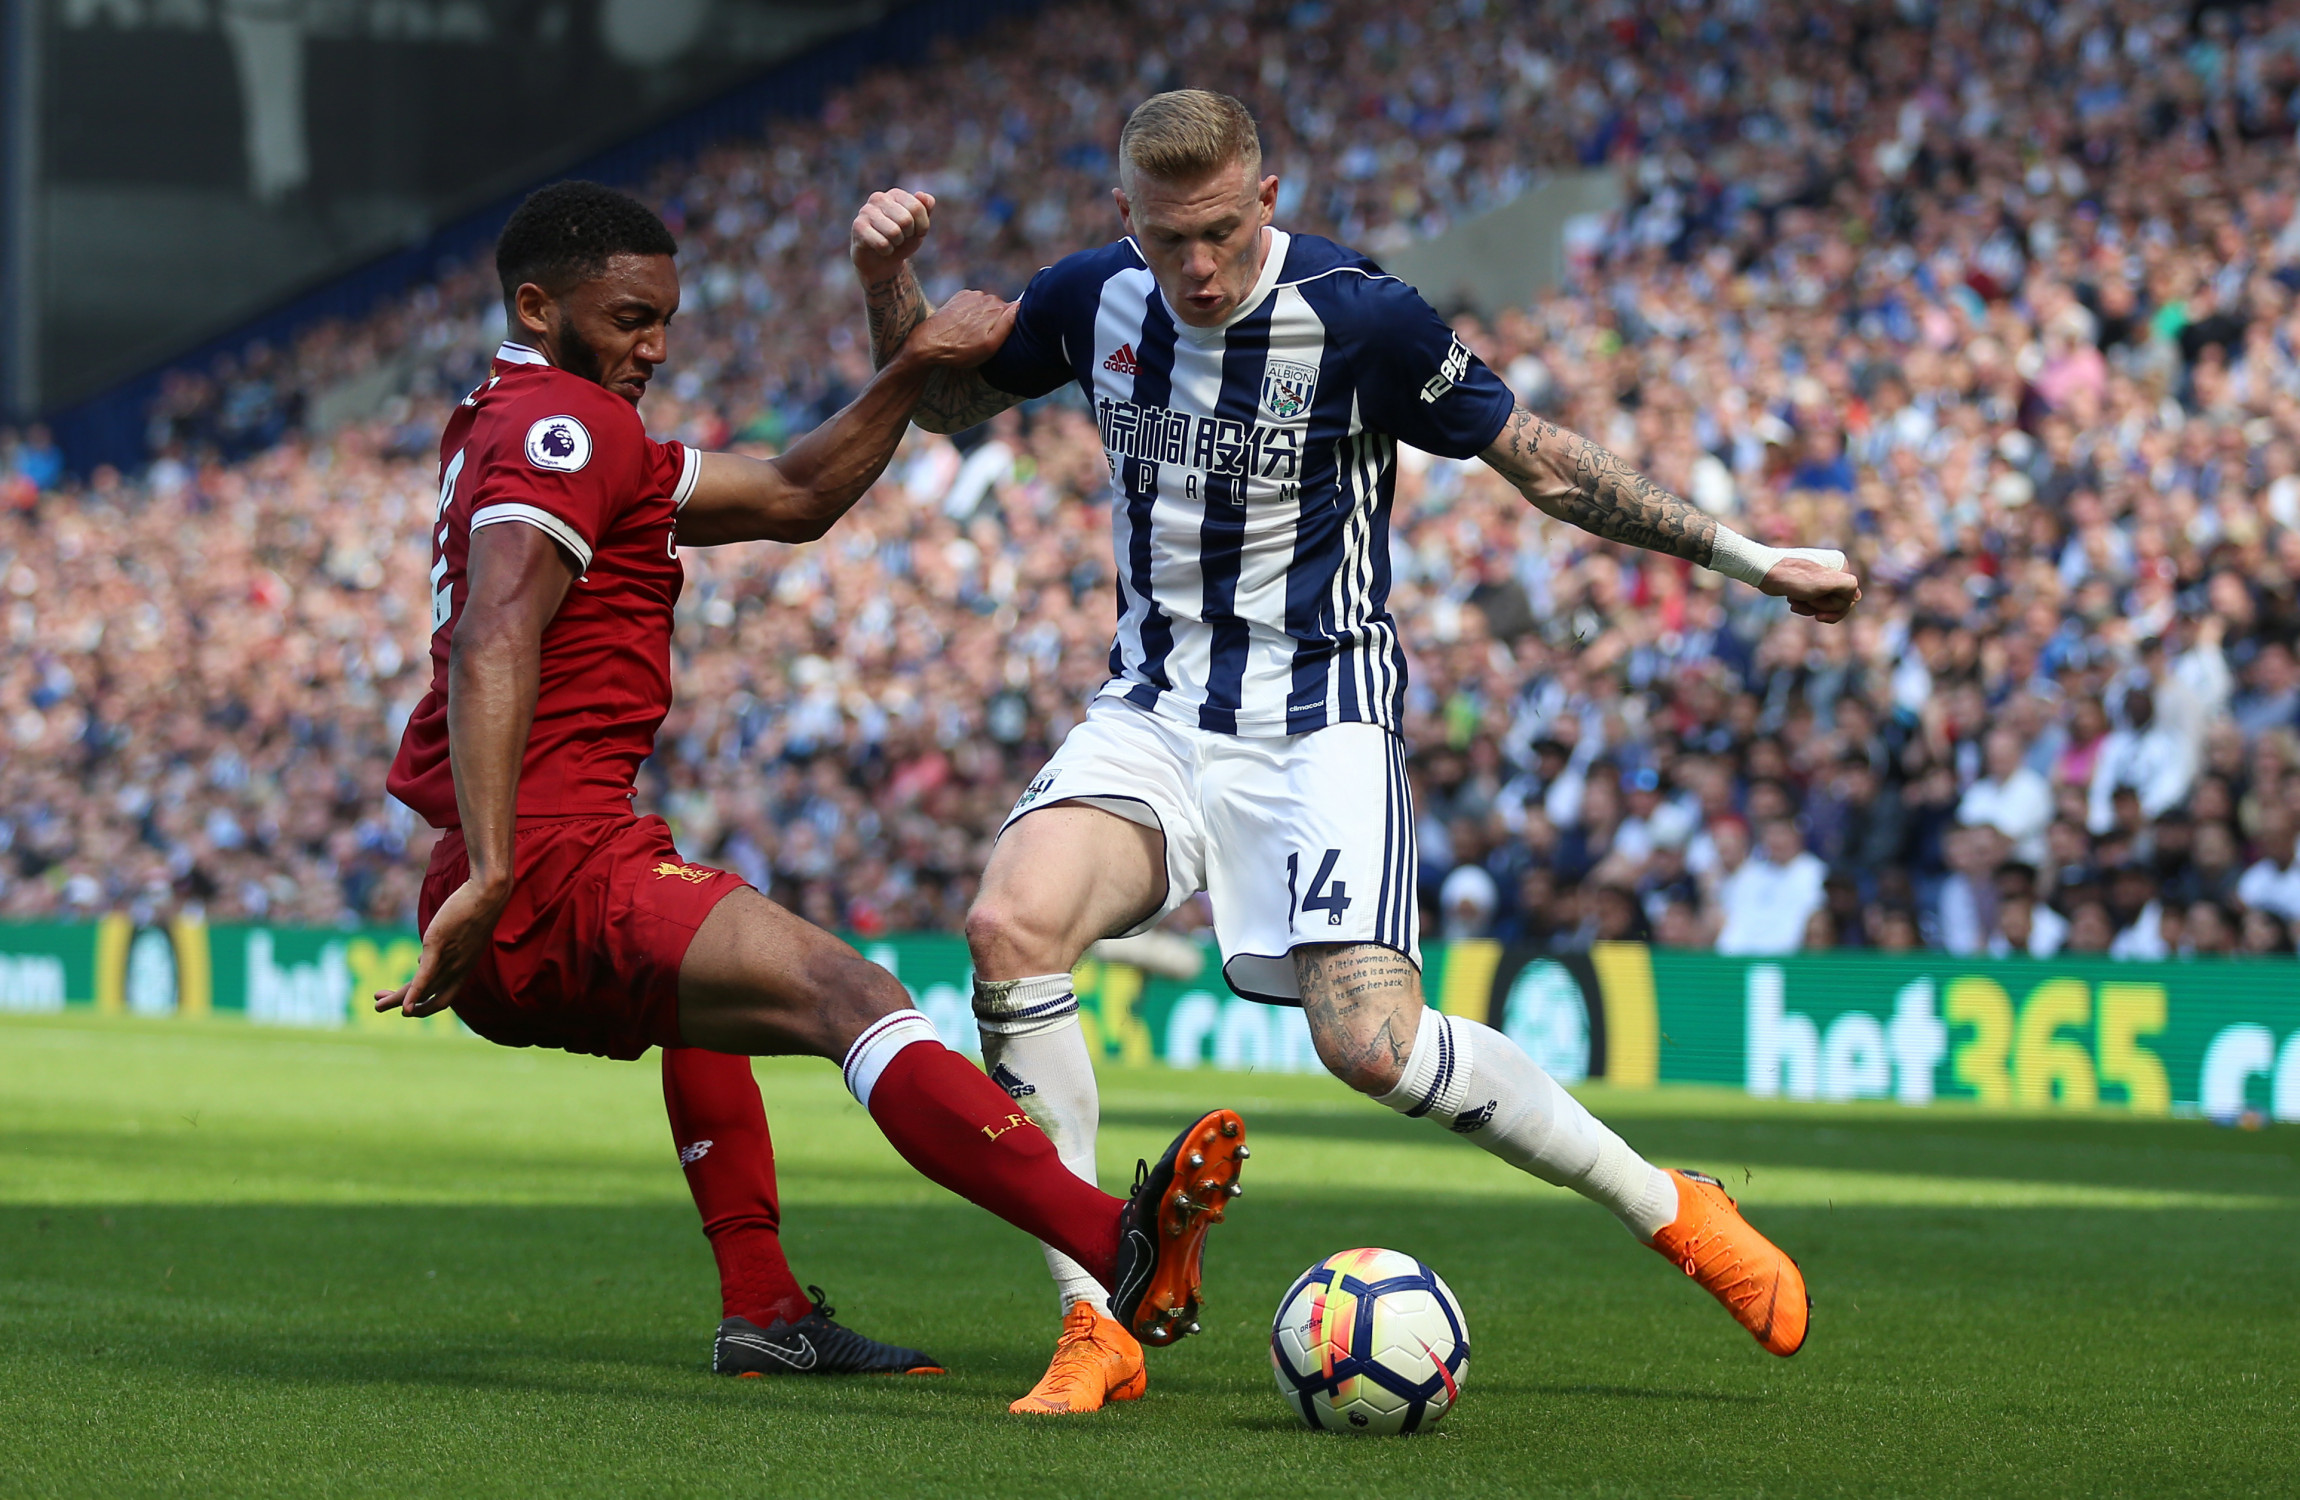 West Brom winger McClean confirms summer exodus: Don't call us snakes